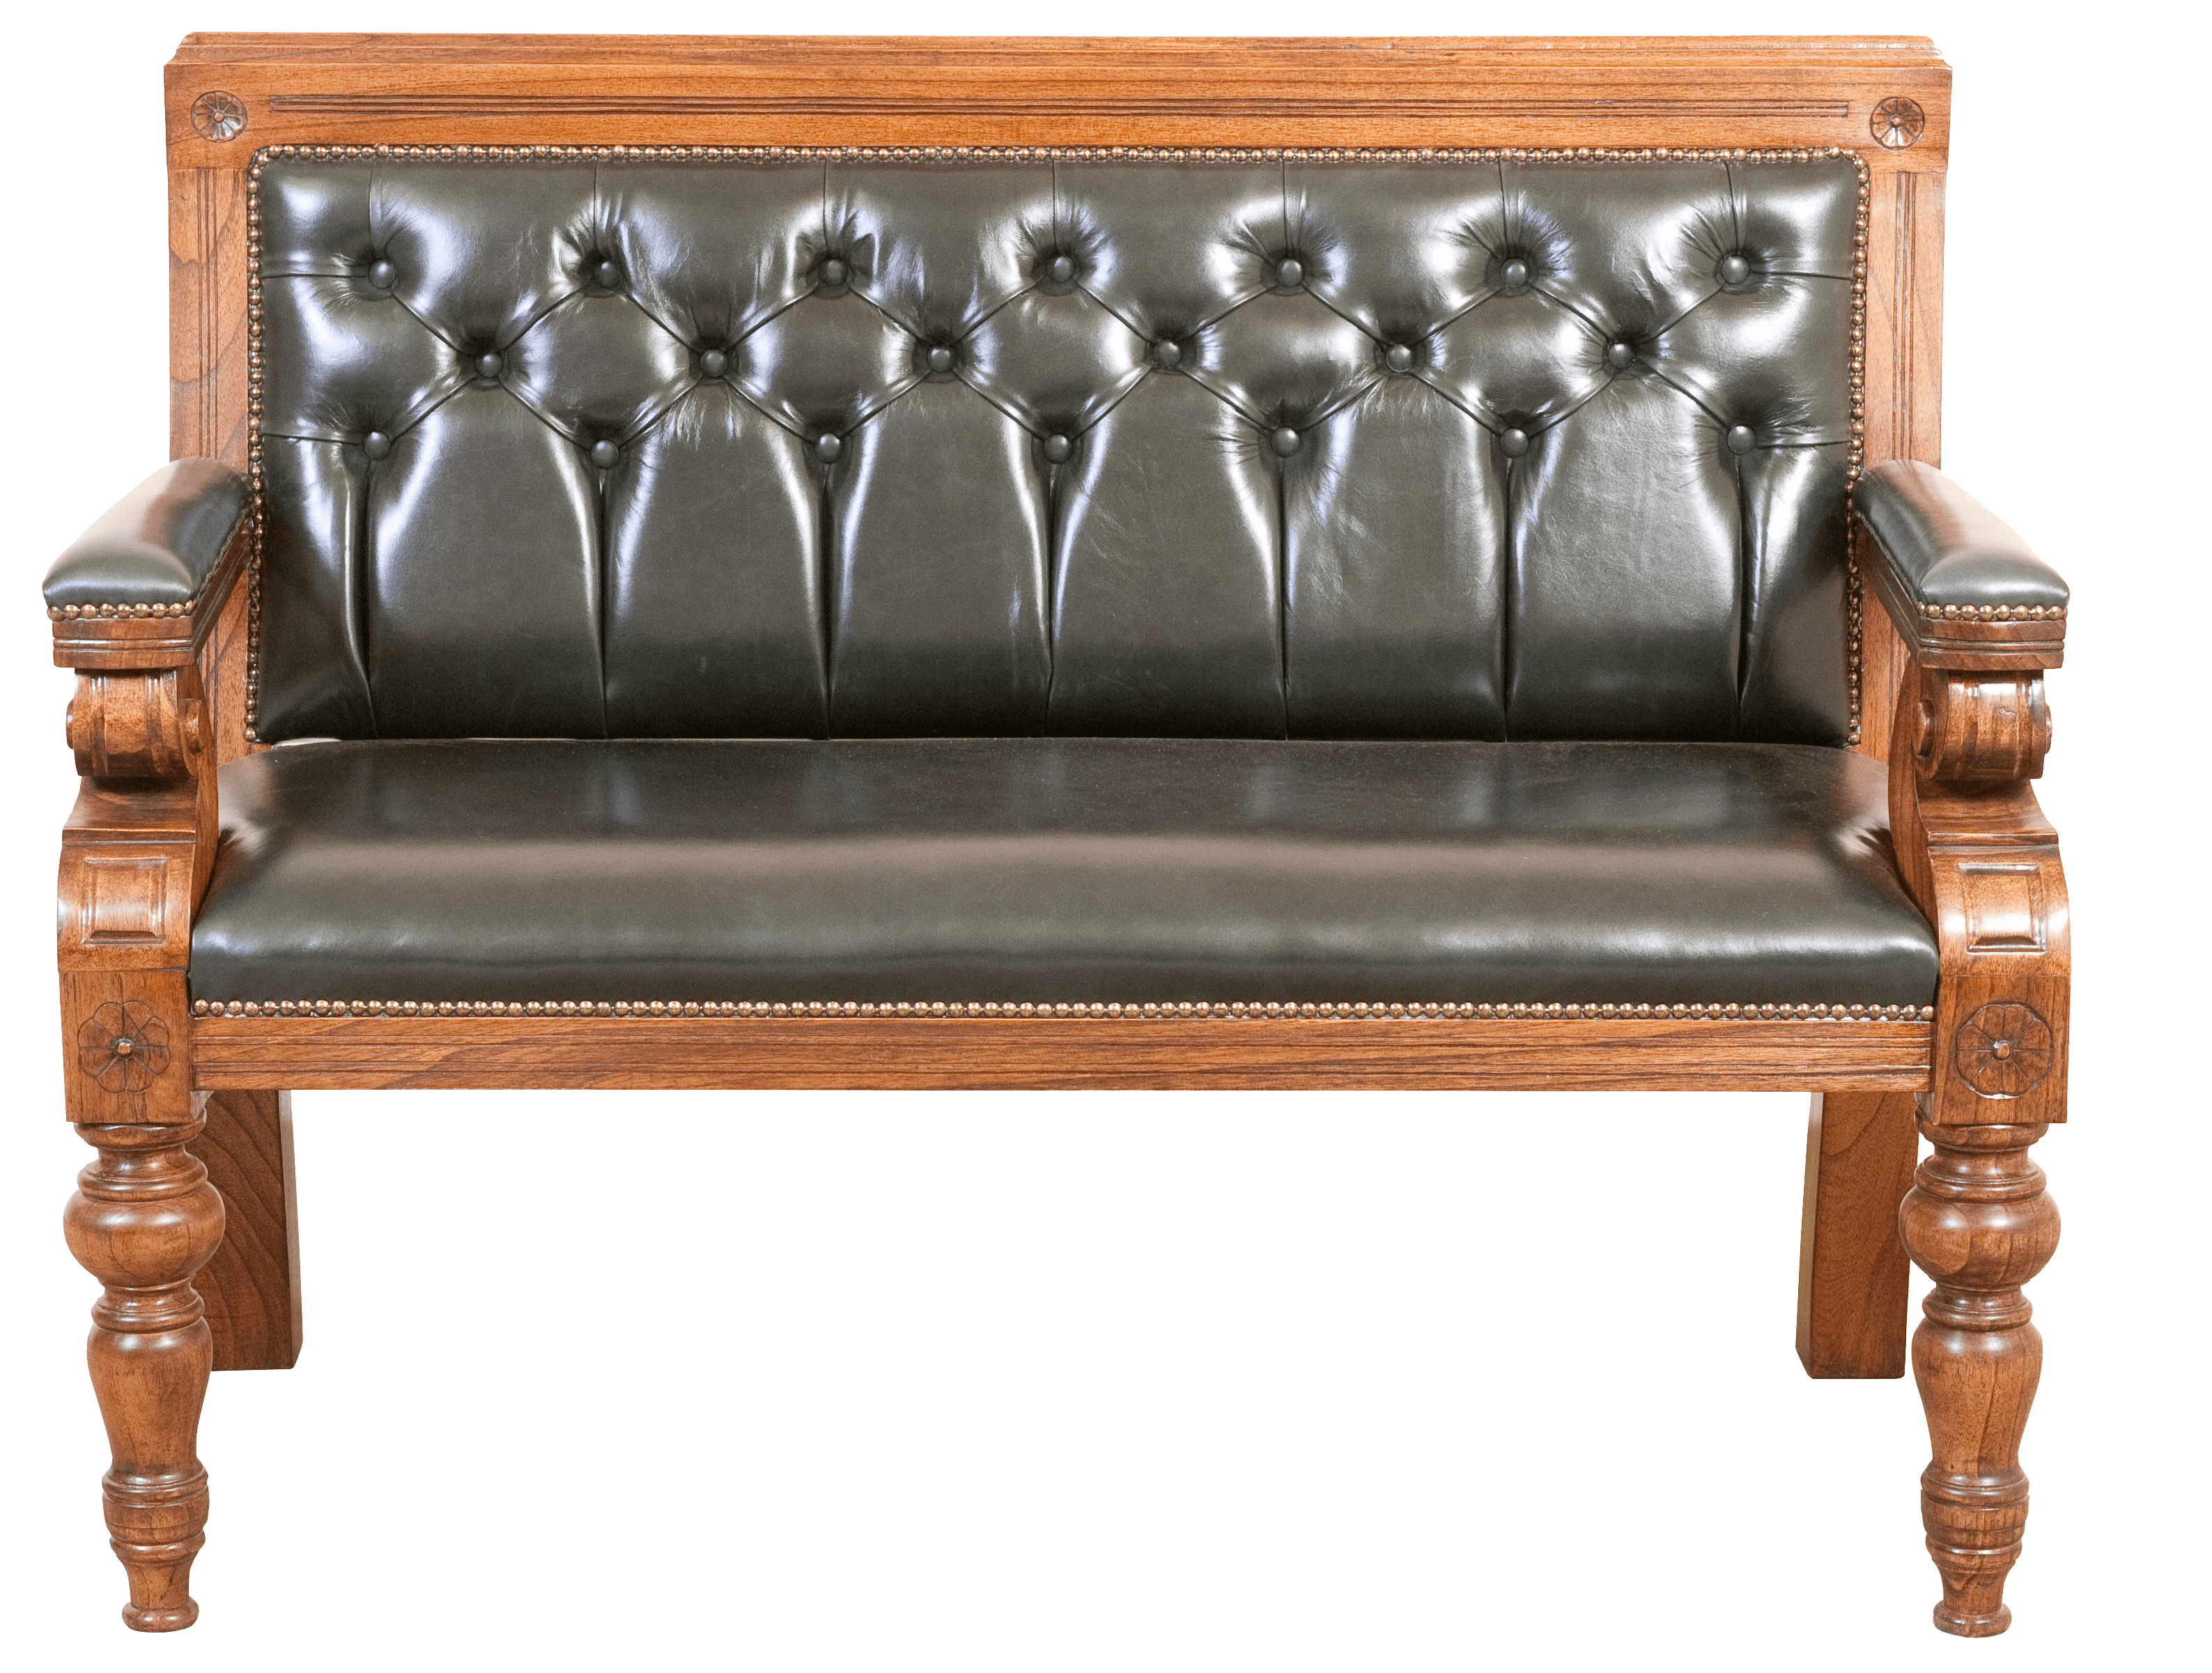 Snooker 3 Seater Bench